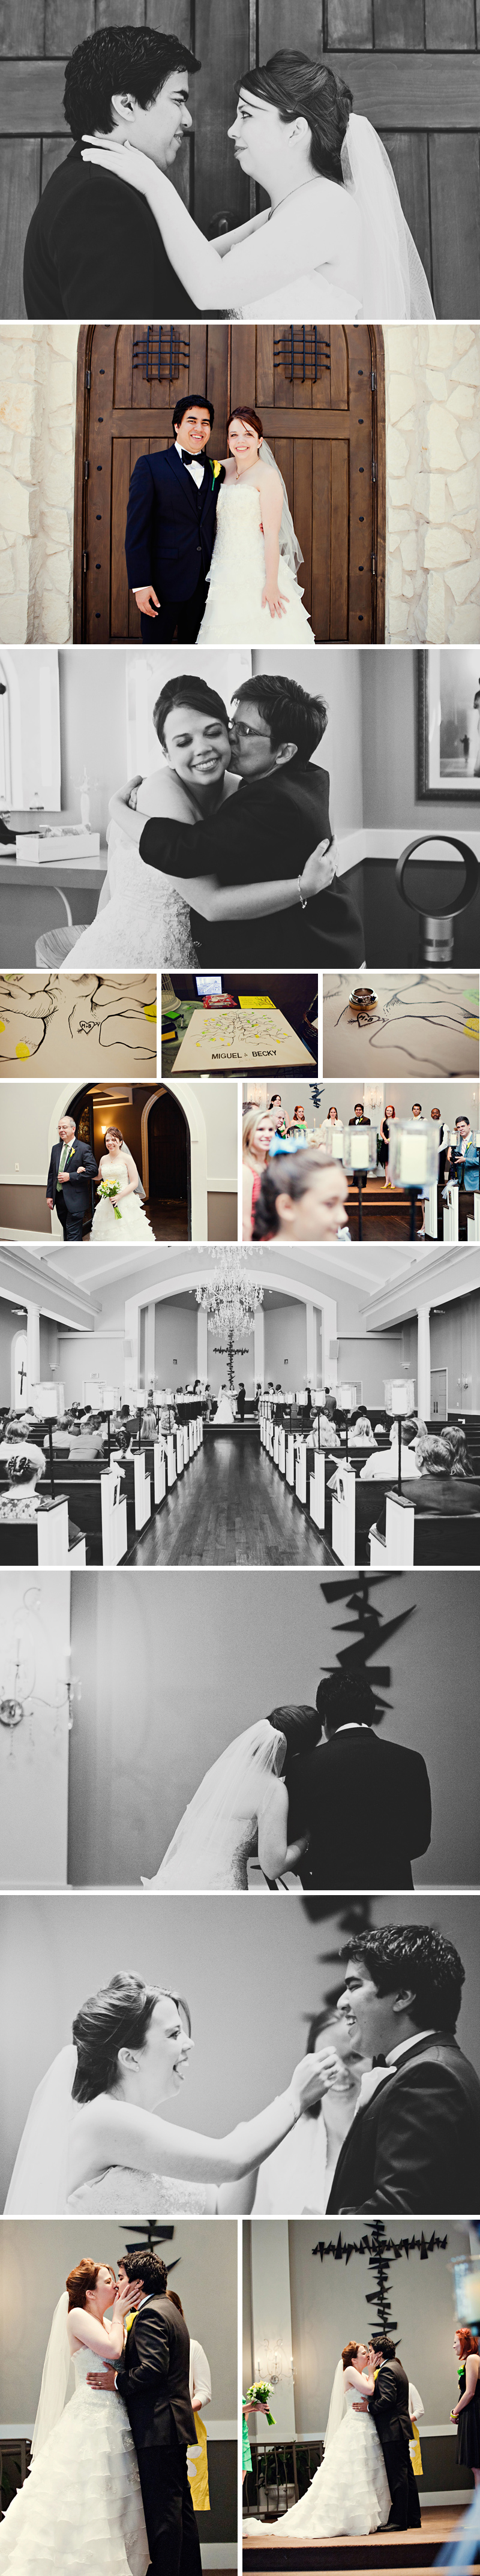 Dallas-Wedding-Photographerc004